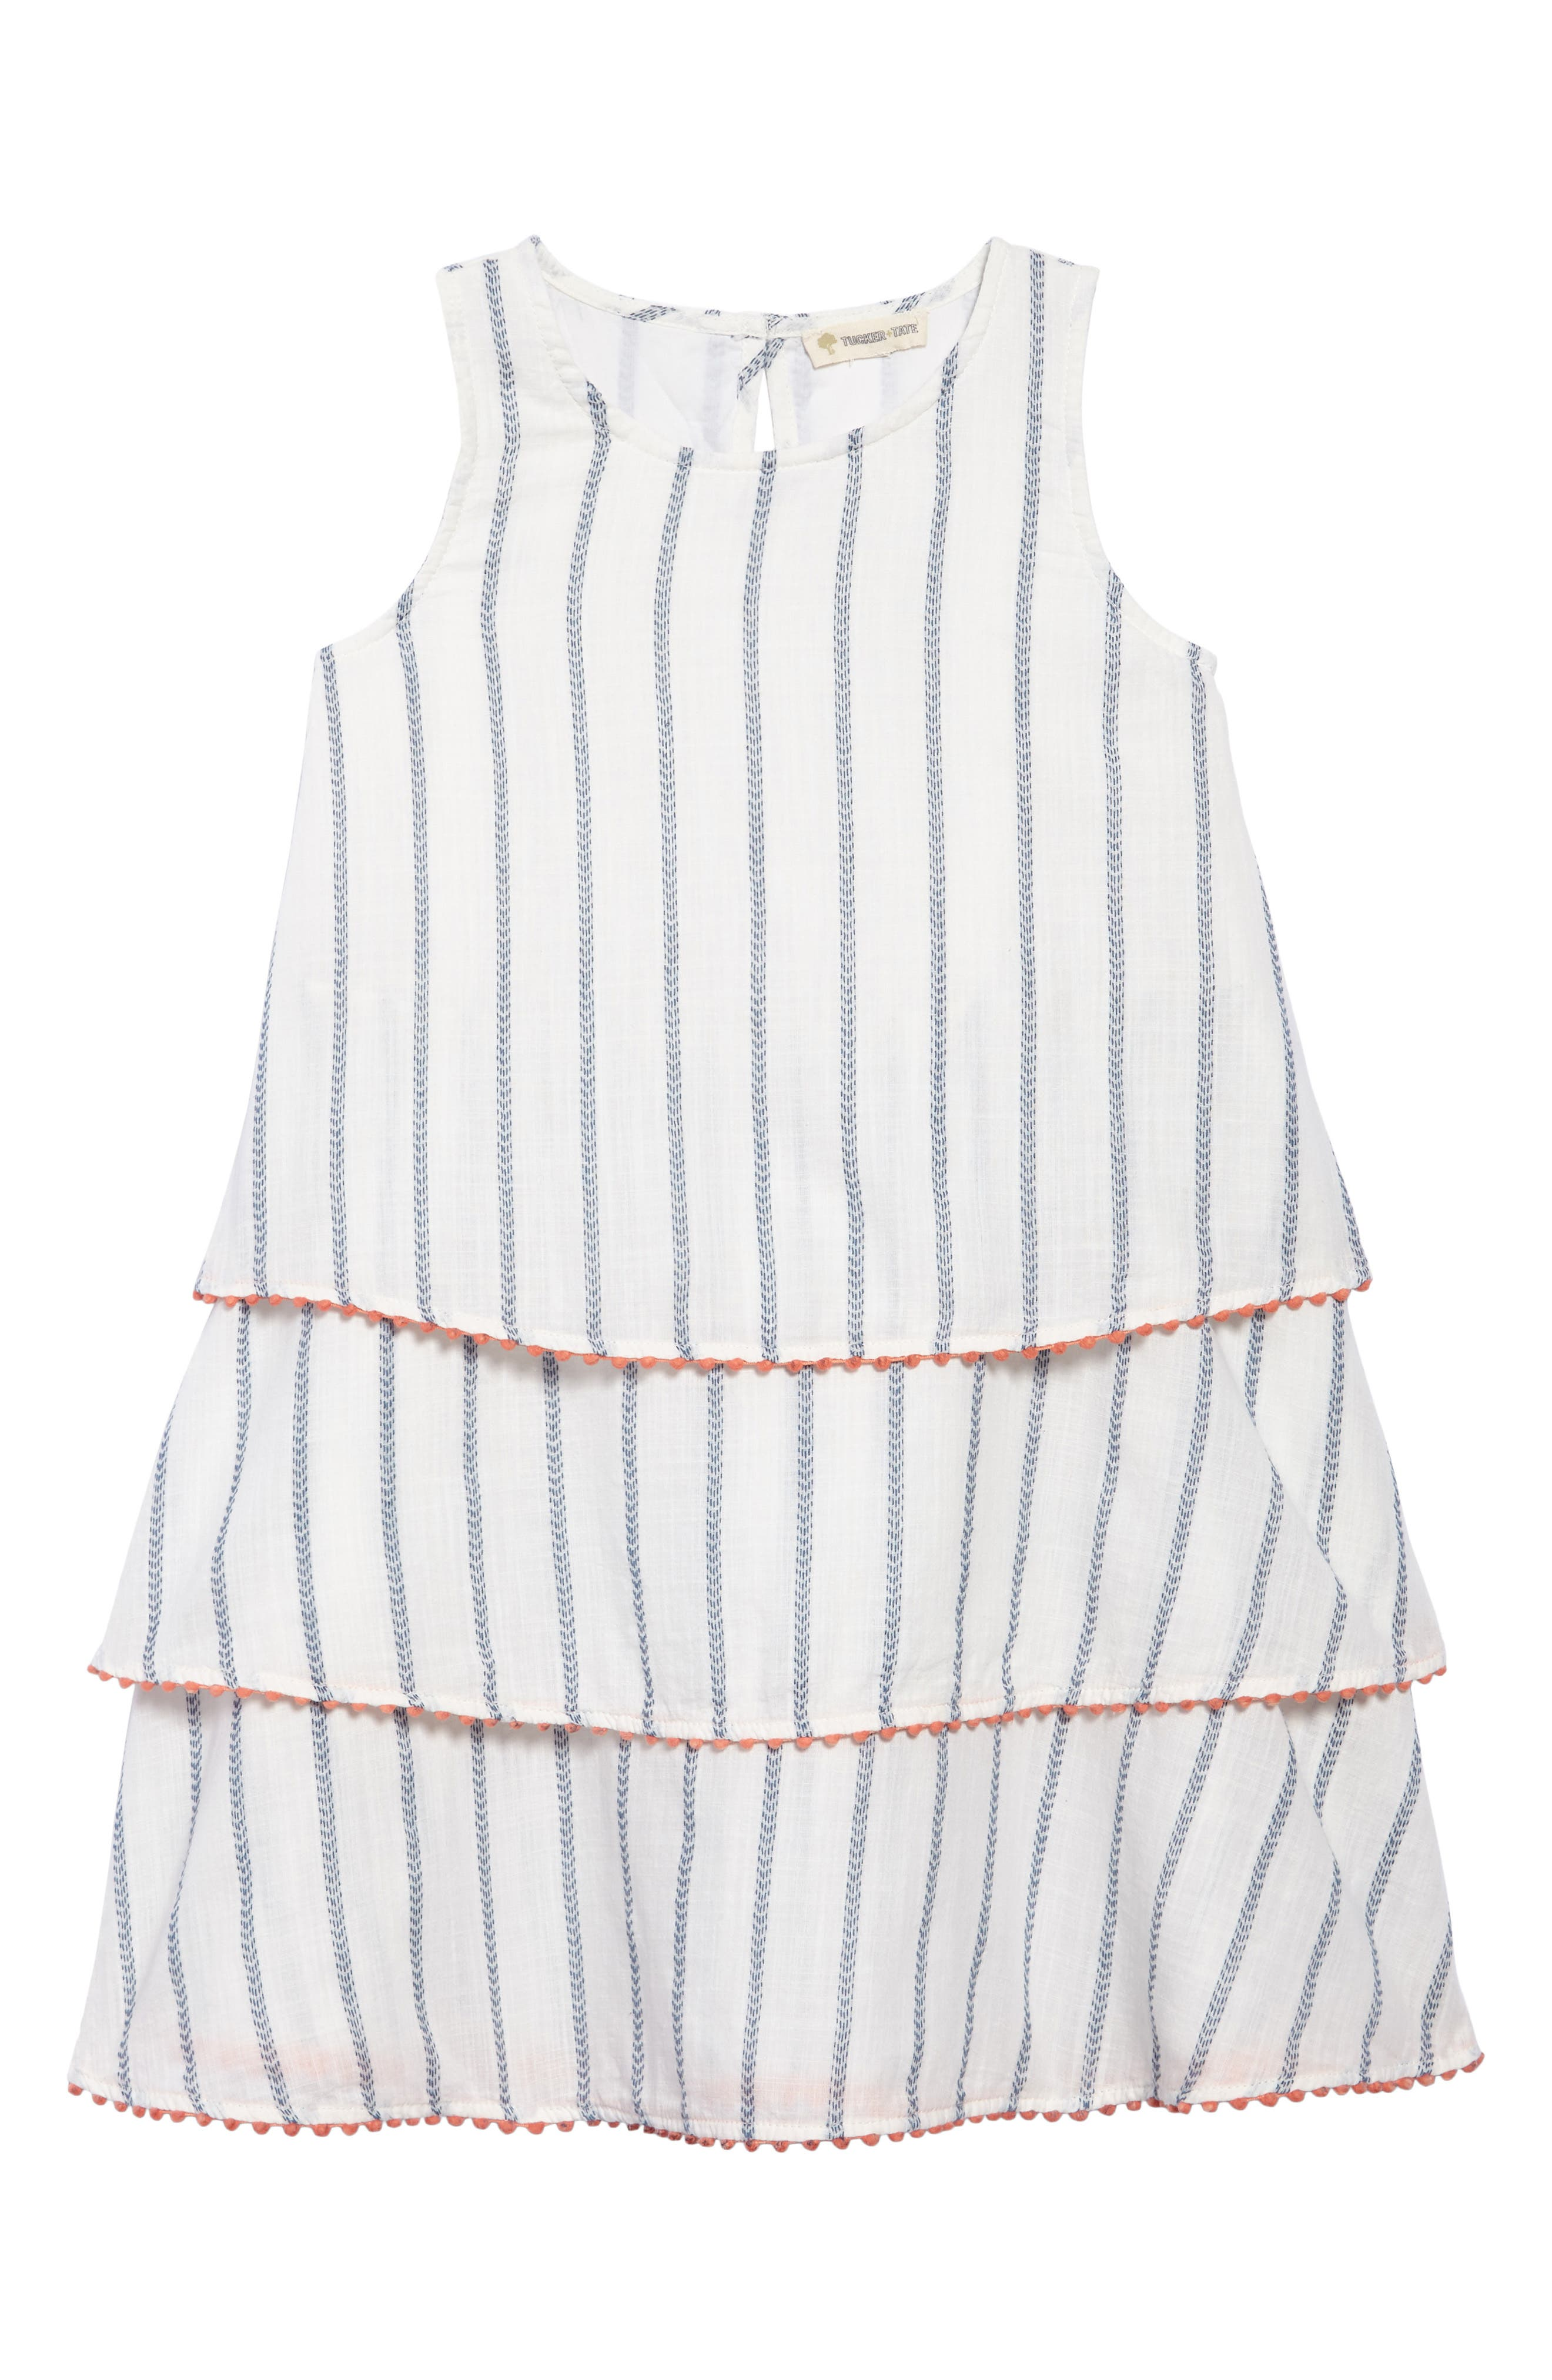 Tiered Woven Dress,                             Main thumbnail 1, color,                             WHITE- BLUE STRIPE